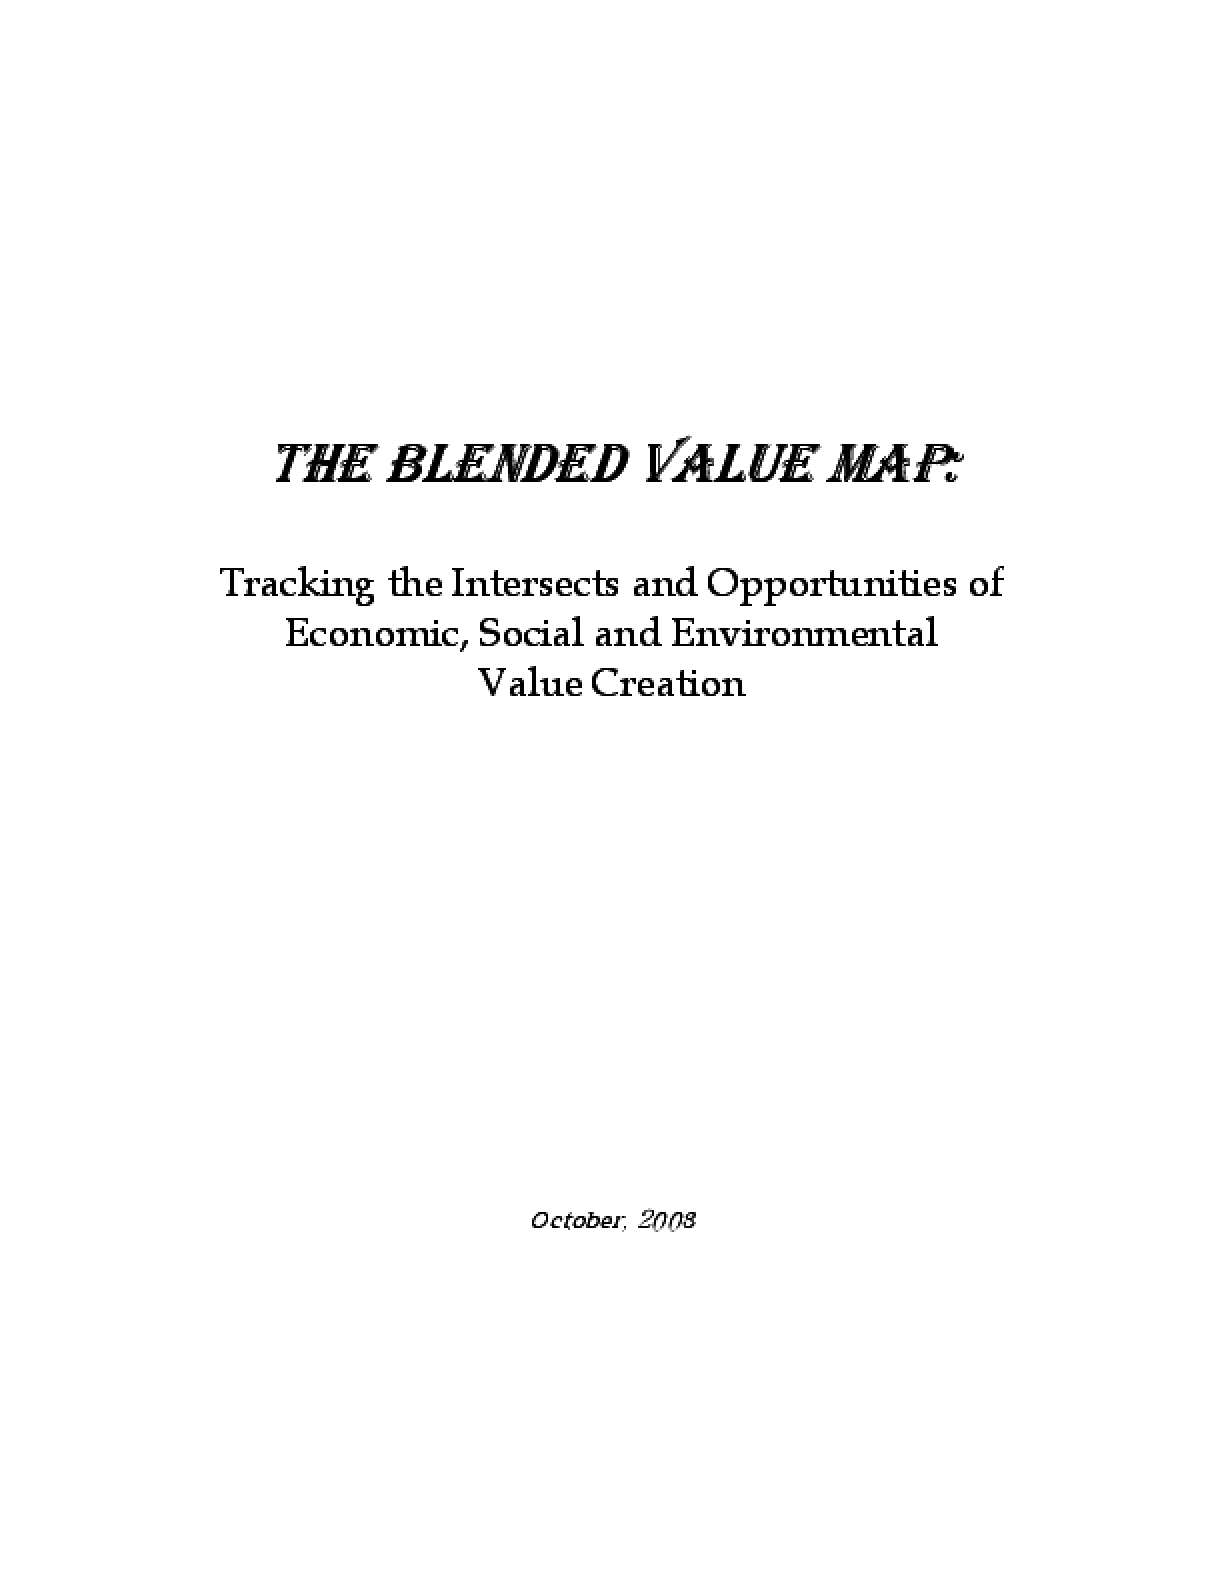 The Blended Value Map: Tracking the Intersects and Opportunities of Economic, Social and Environmental Value Creation